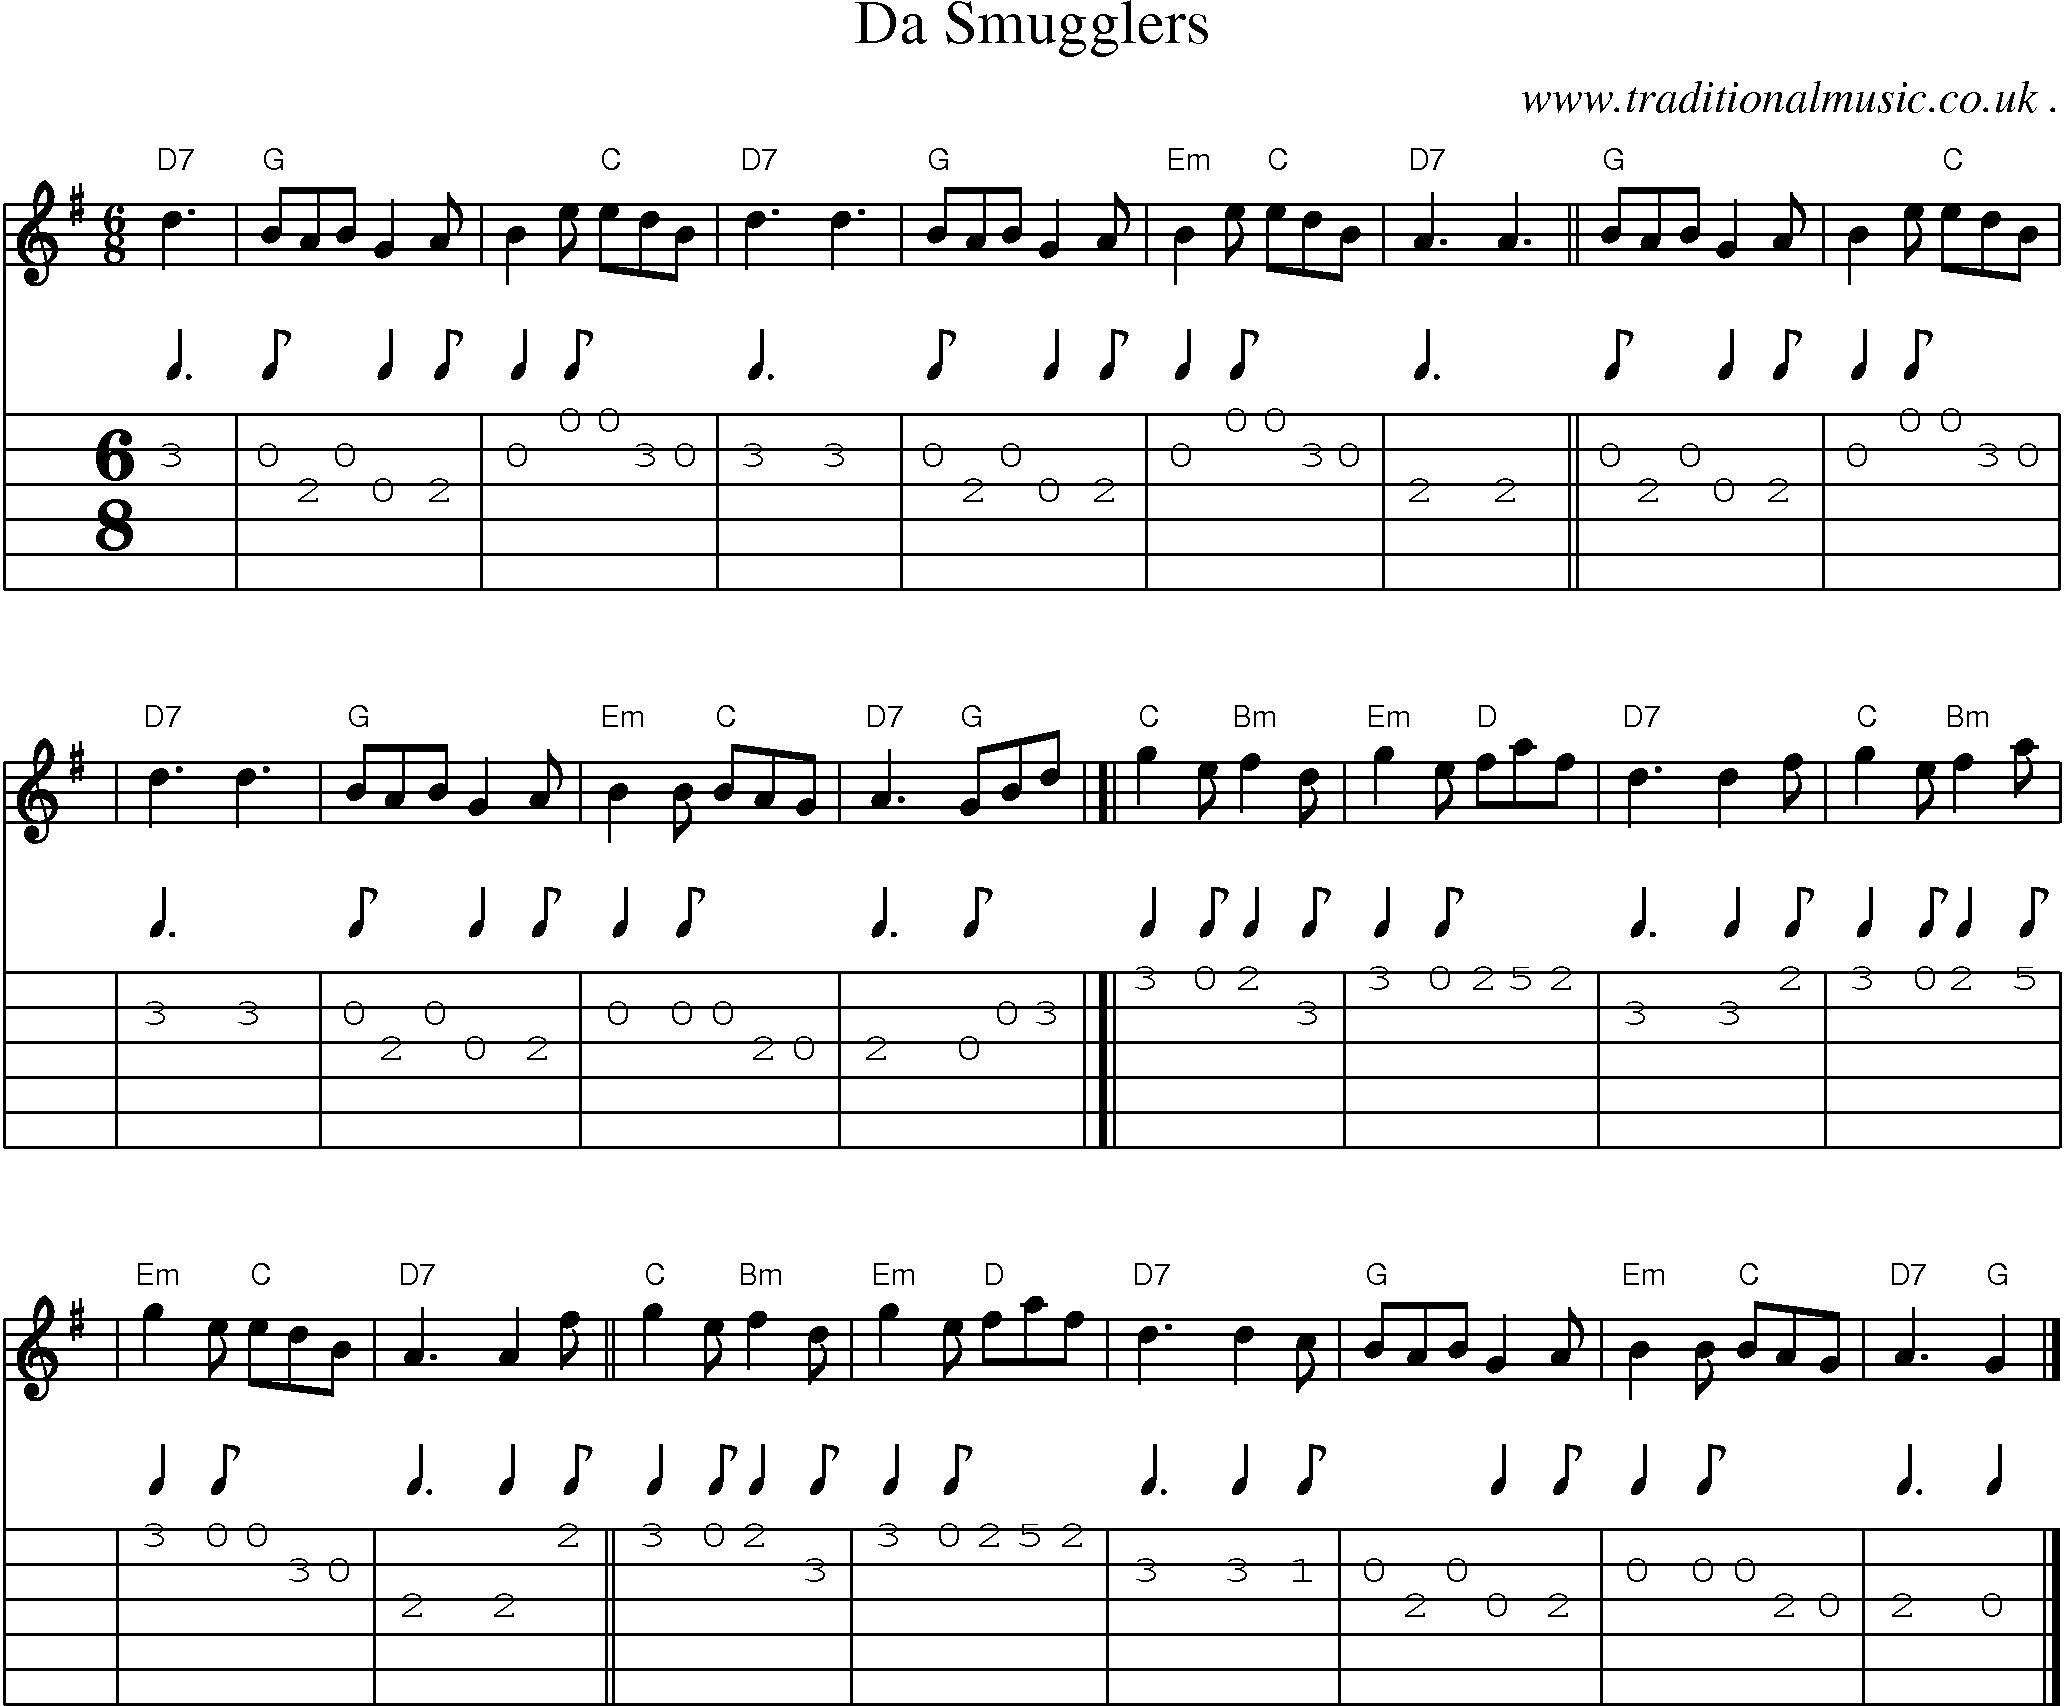 Scottish Tune, Sheetmusic, Midi, Mp3, Guitar chords u0026 tabs: Da Smugglers